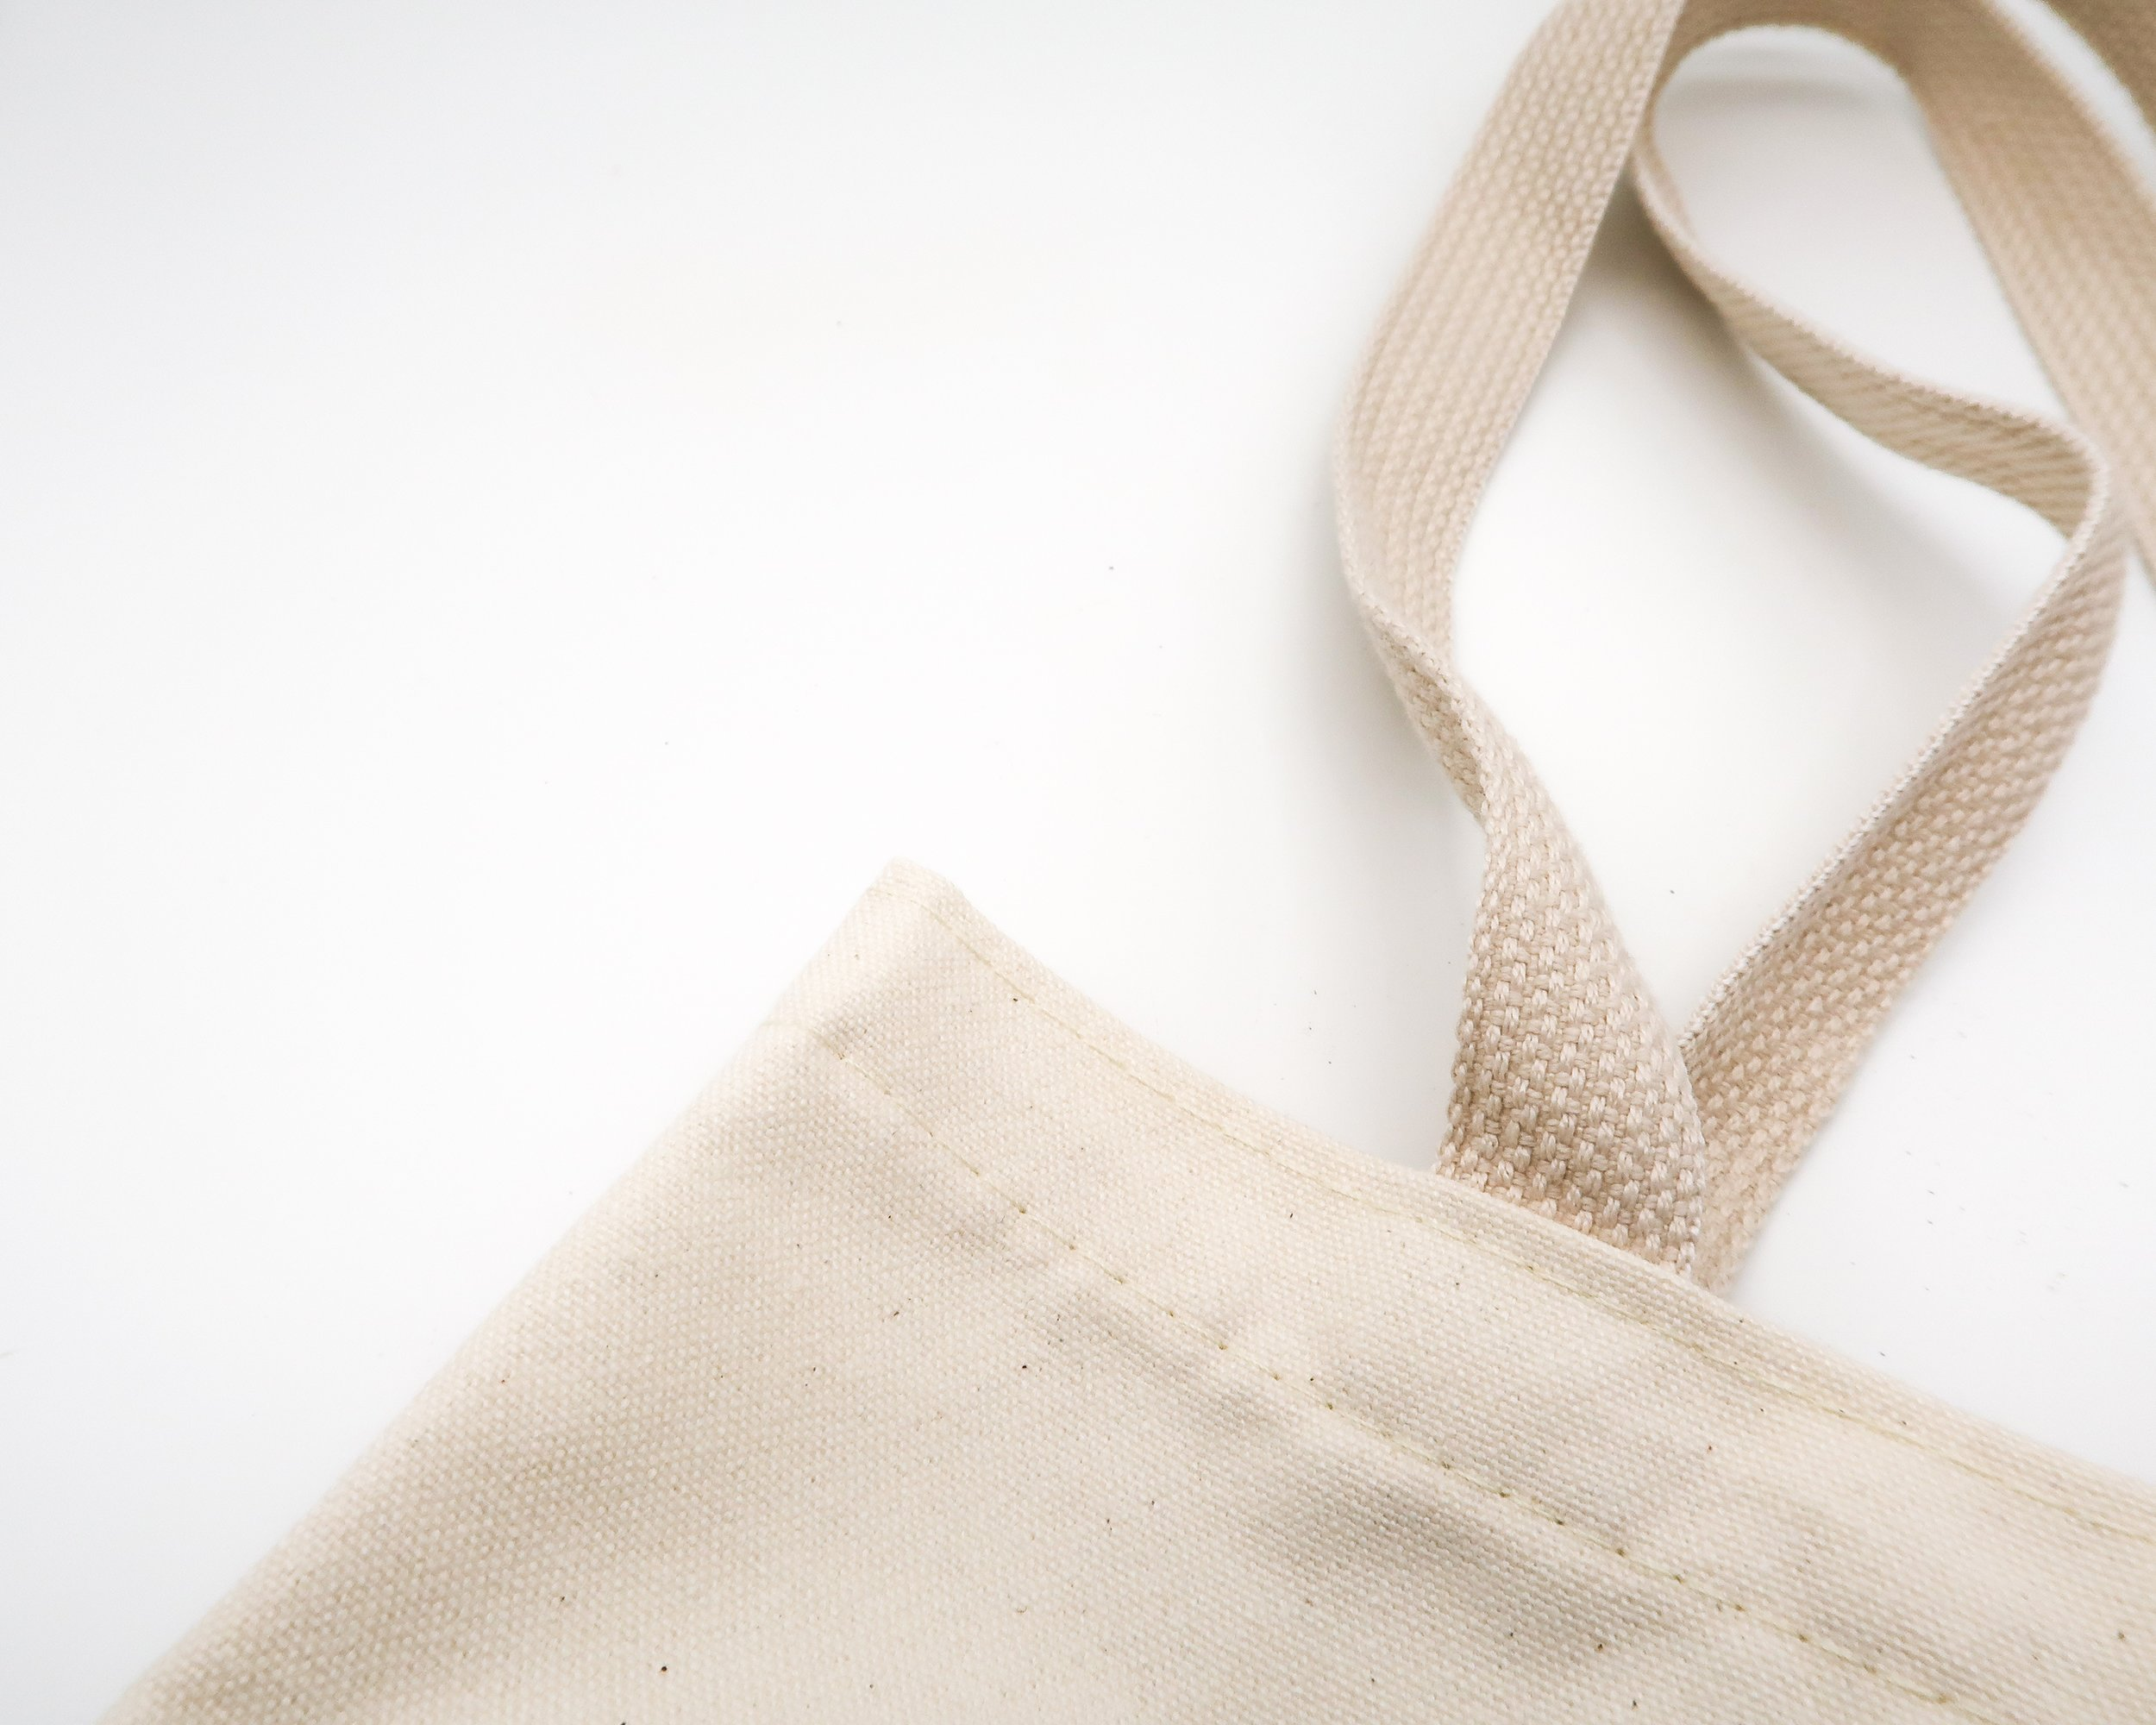 bone collective studio_plastic free July_tote bags